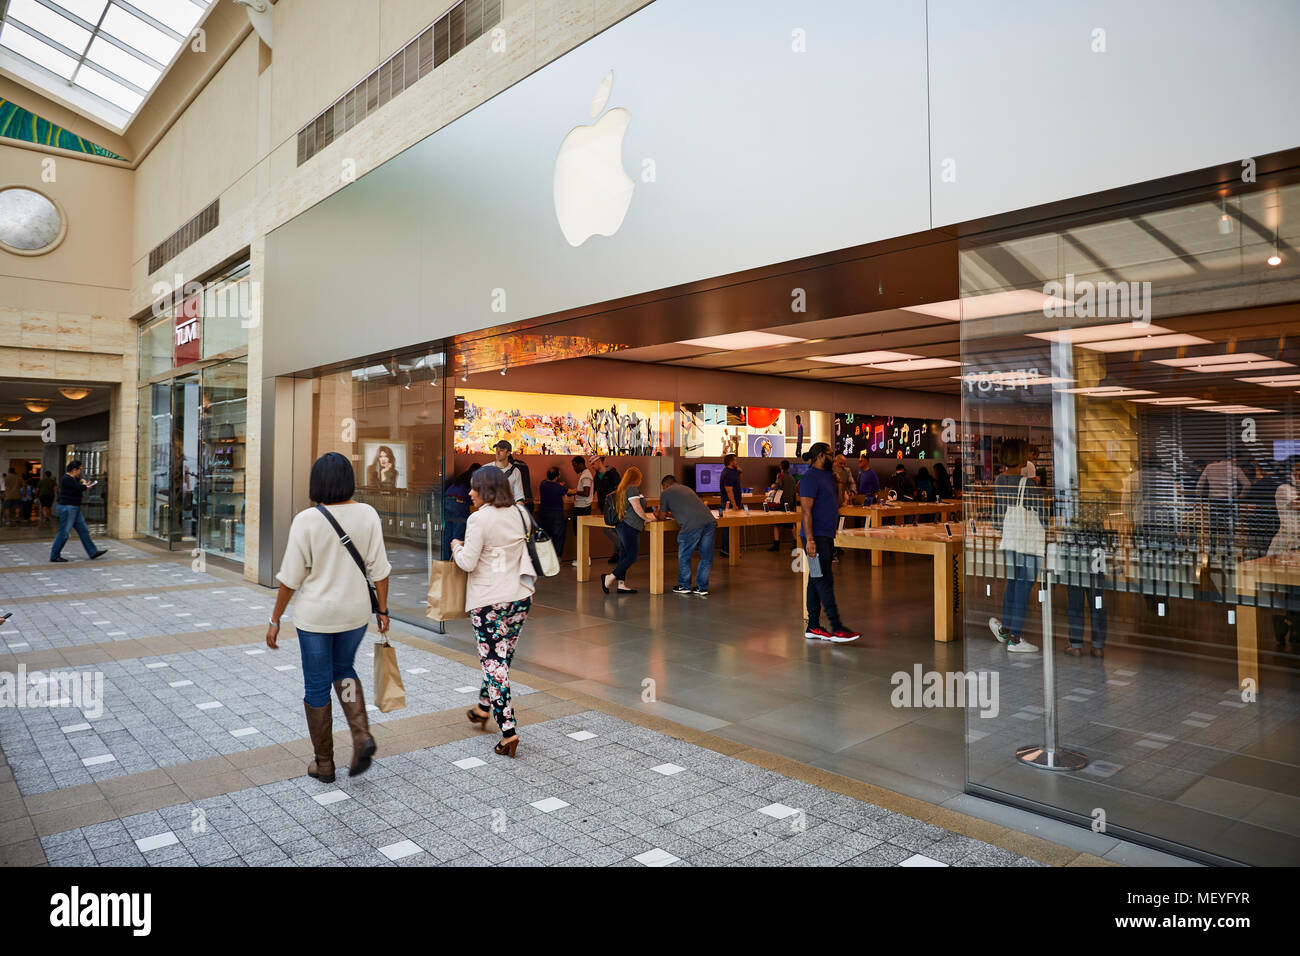 Upscale Mall Interior Stock Photos & Upscale Mall Interior Stock ...